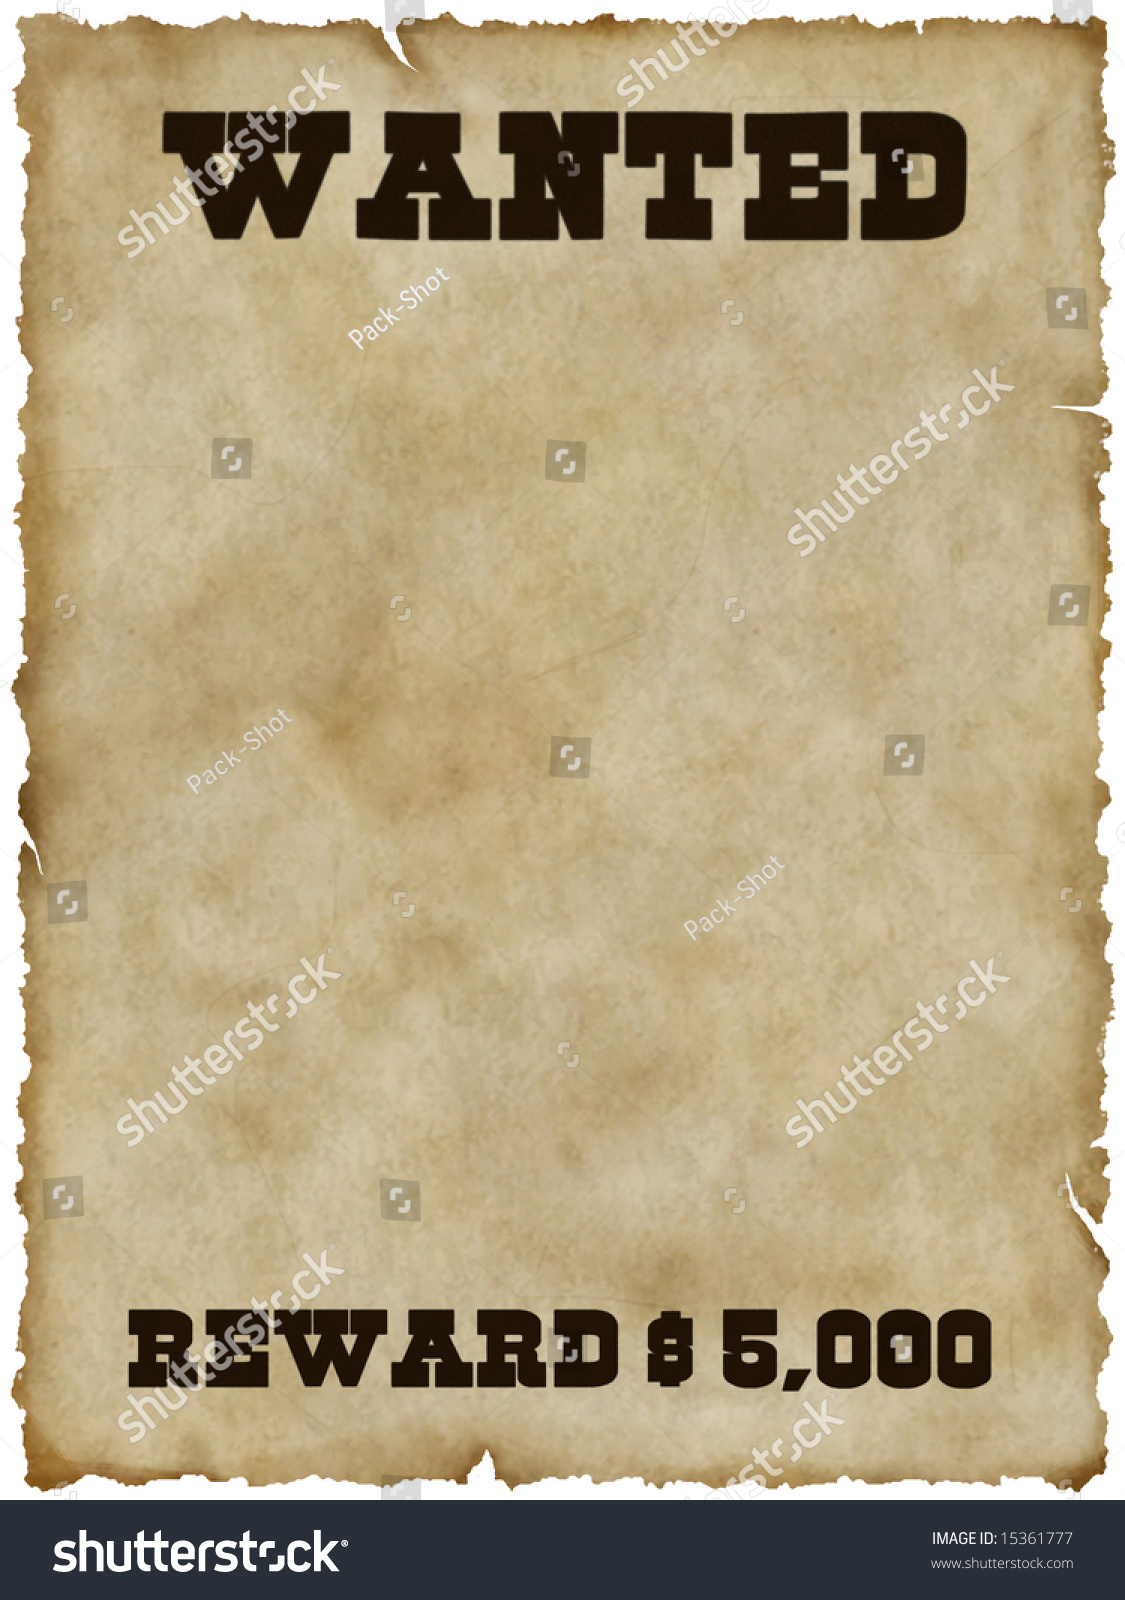 Wanted Poster Stock Photo 15361777   Shutterstock